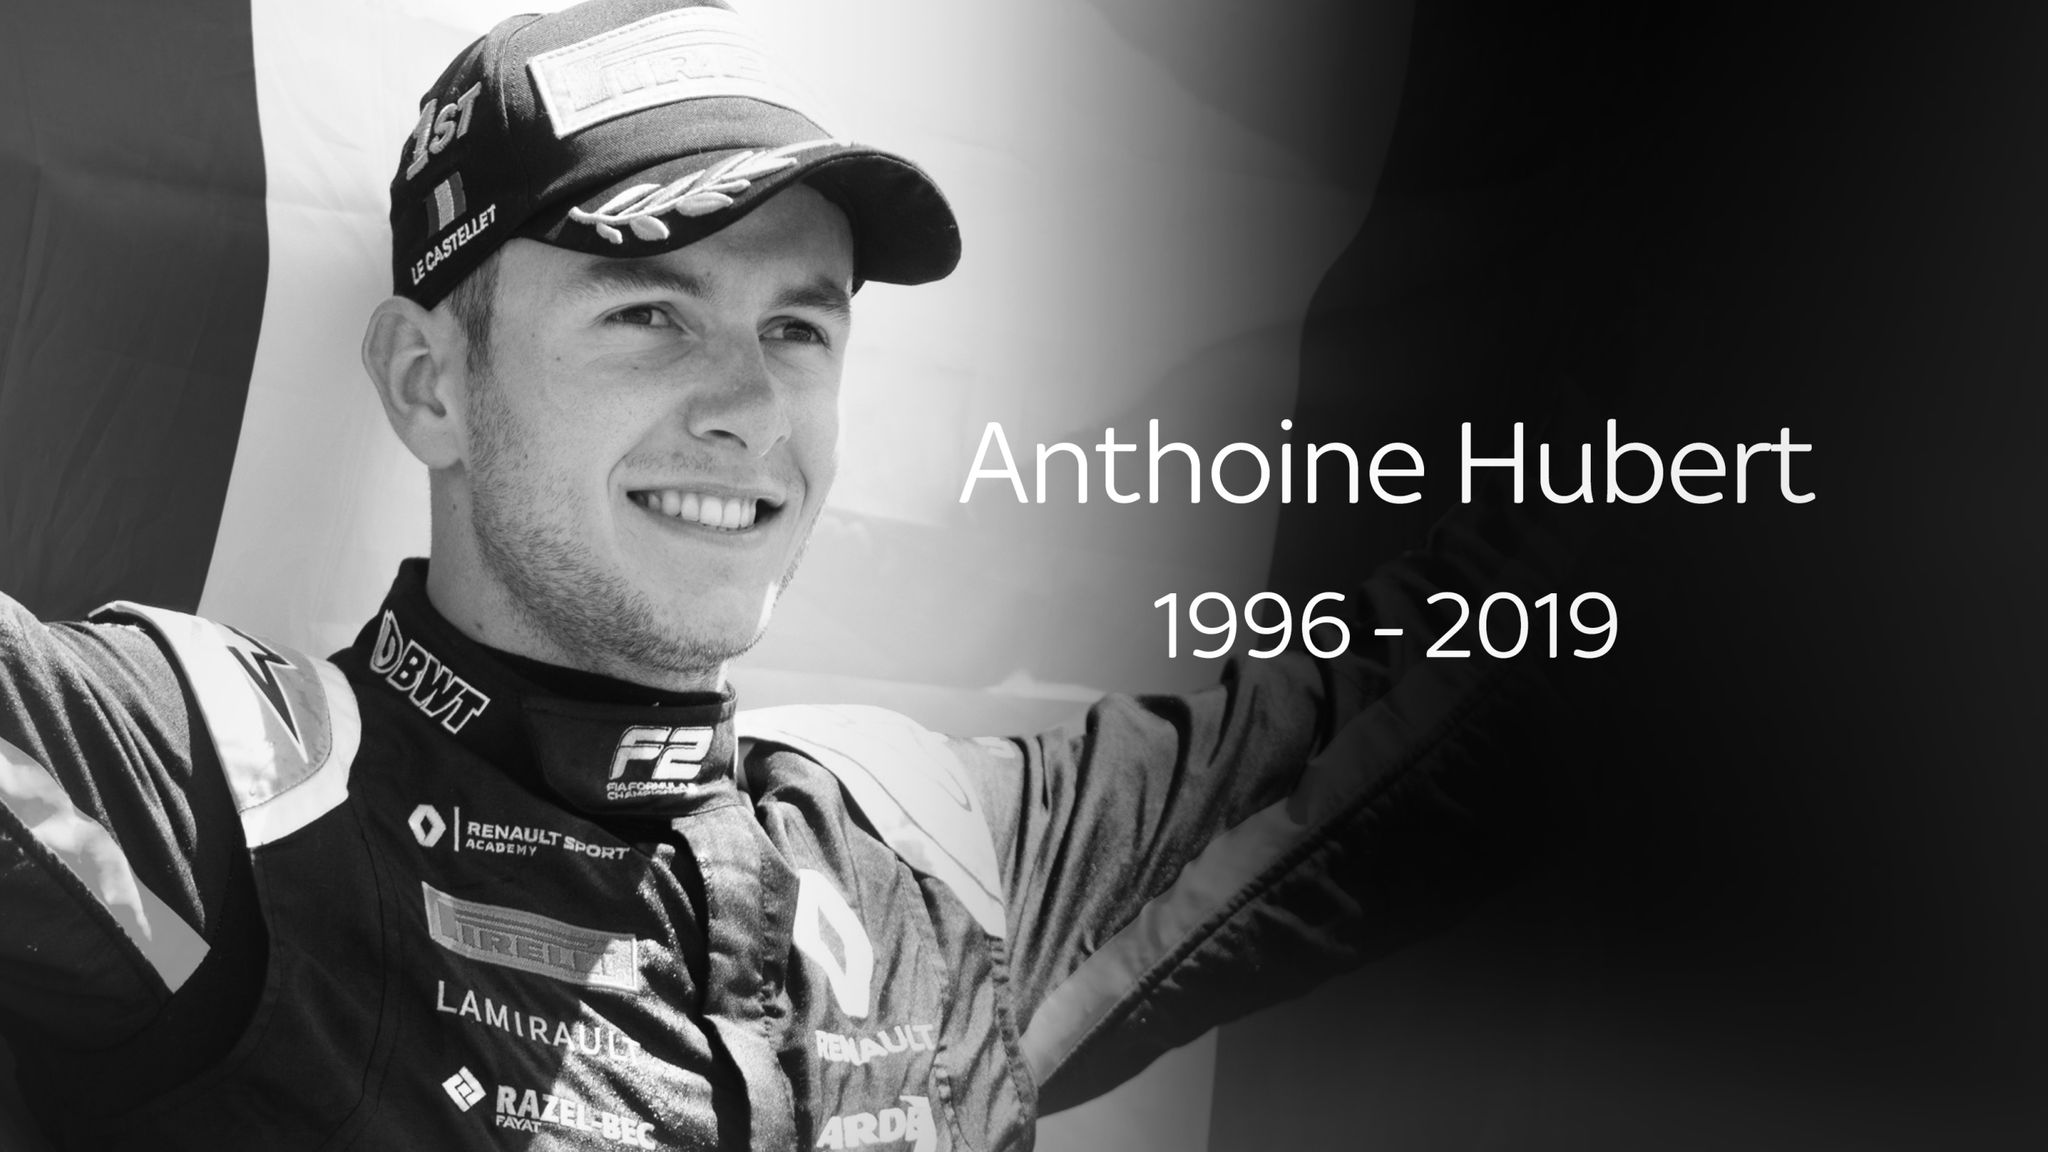 Anthoine Hubert killed in F2 accident at Spa | F1 News